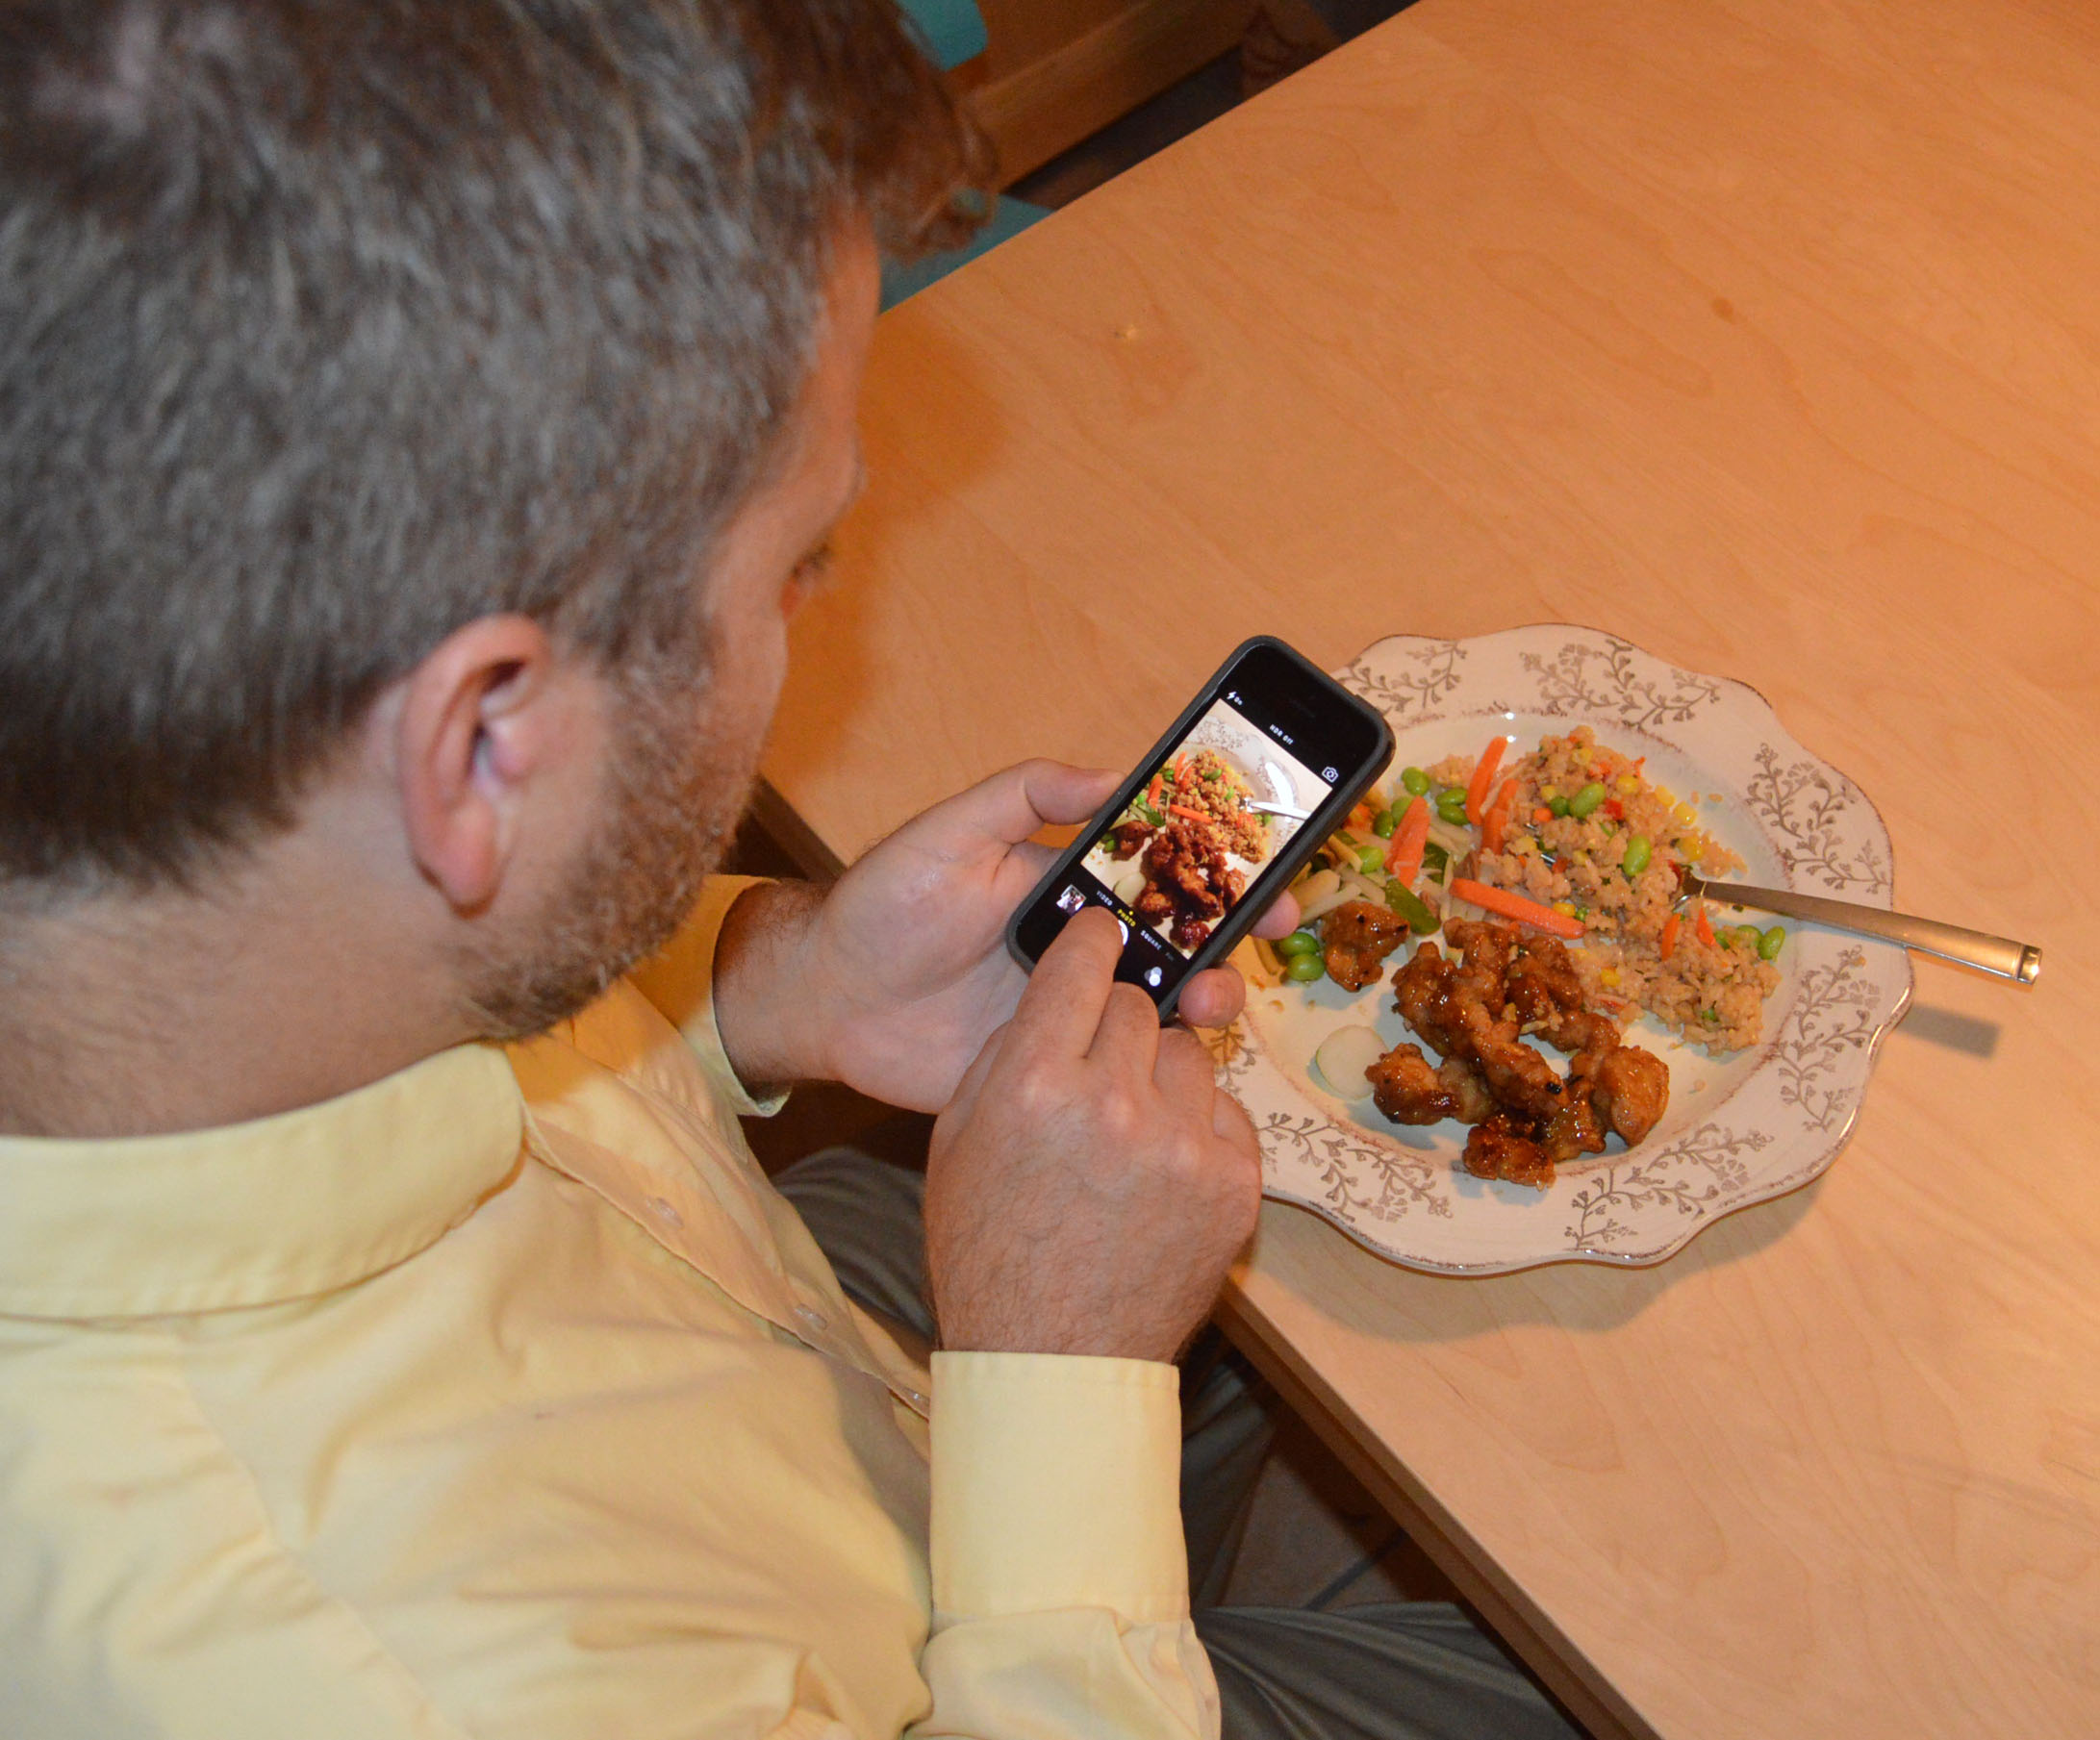 Using the Remote Food Photography Method to Assess Diets